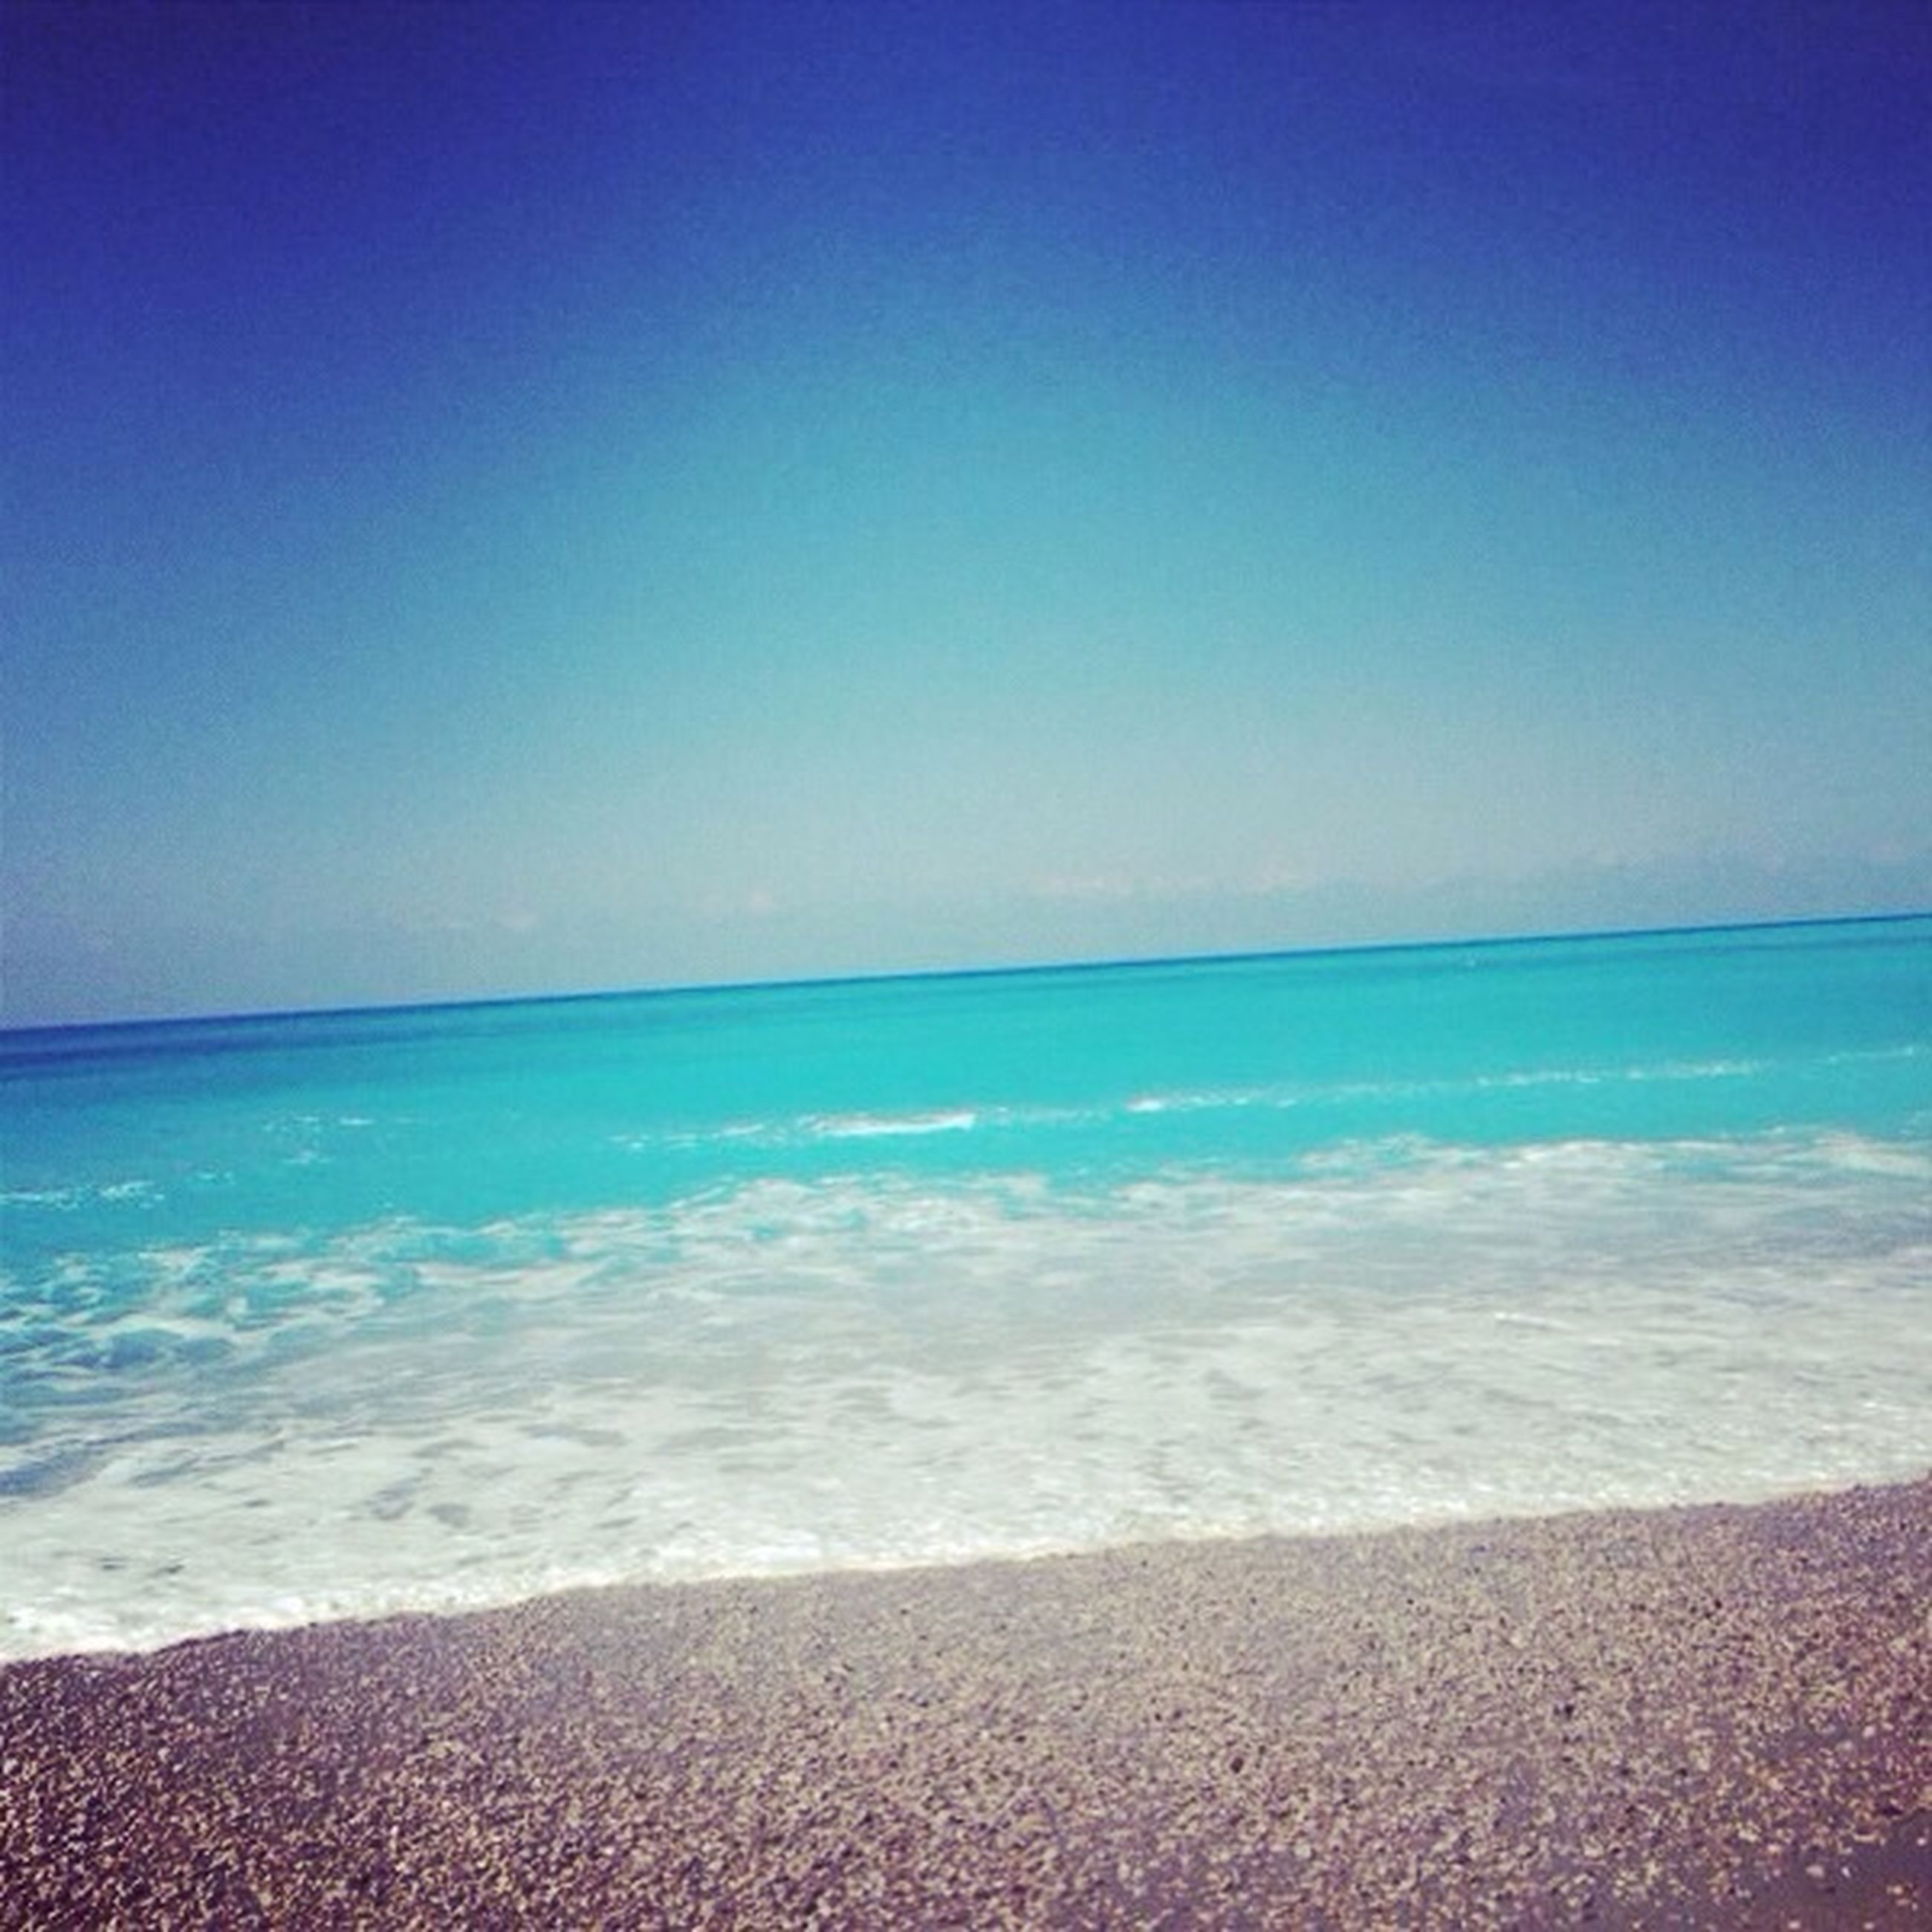 sea, water, beach, horizon over water, blue, shore, scenics, tranquil scene, beauty in nature, clear sky, tranquility, copy space, sand, wave, nature, surf, idyllic, sky, coastline, seascape